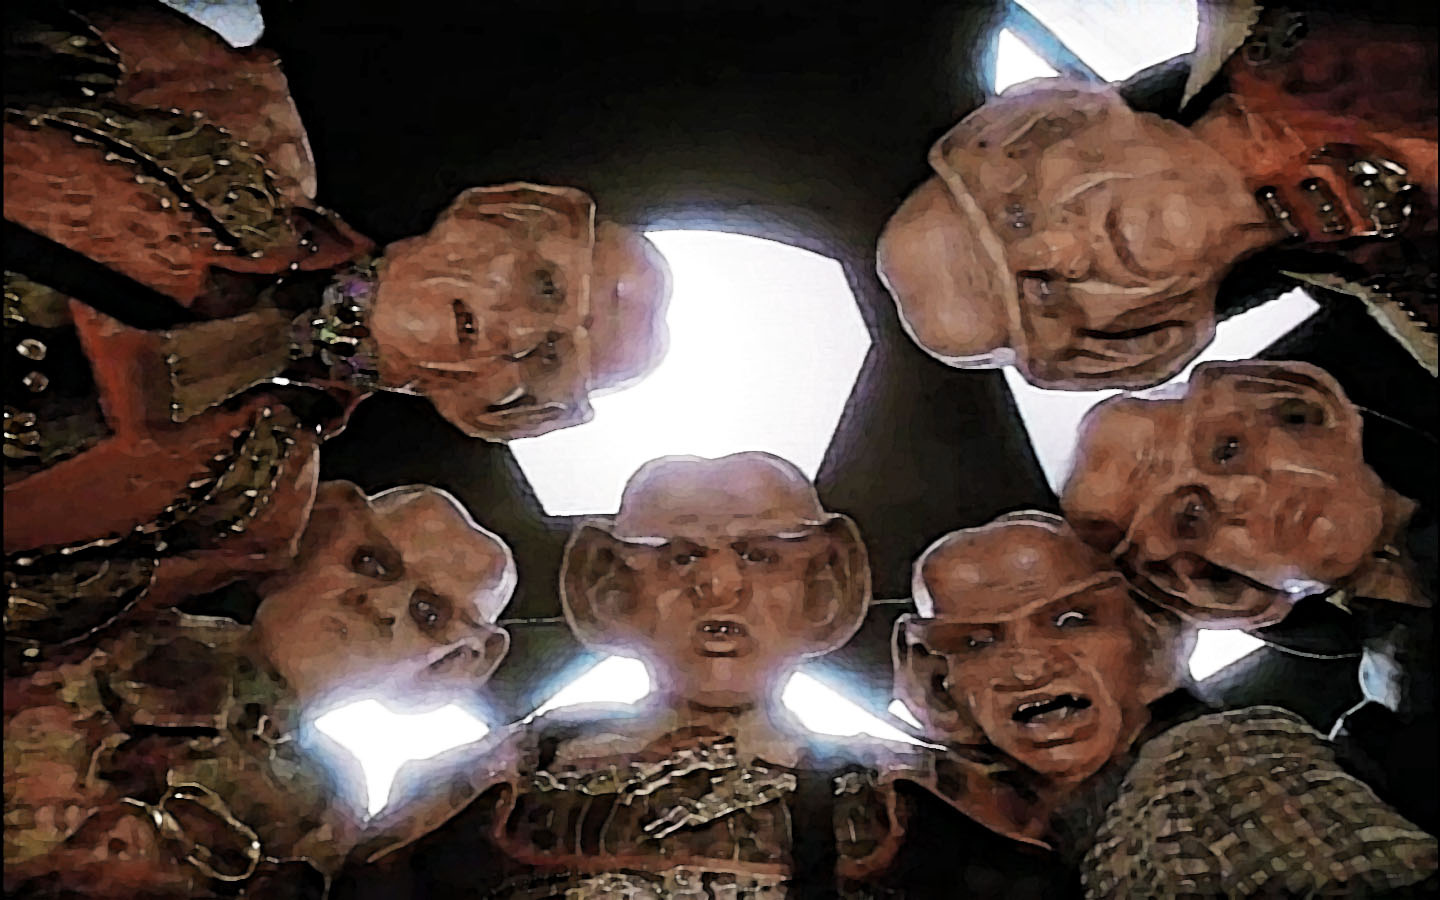 Best 60 Ferengi Wallpaper on HipWallpaper Ferengi Wallpaper 1440x900